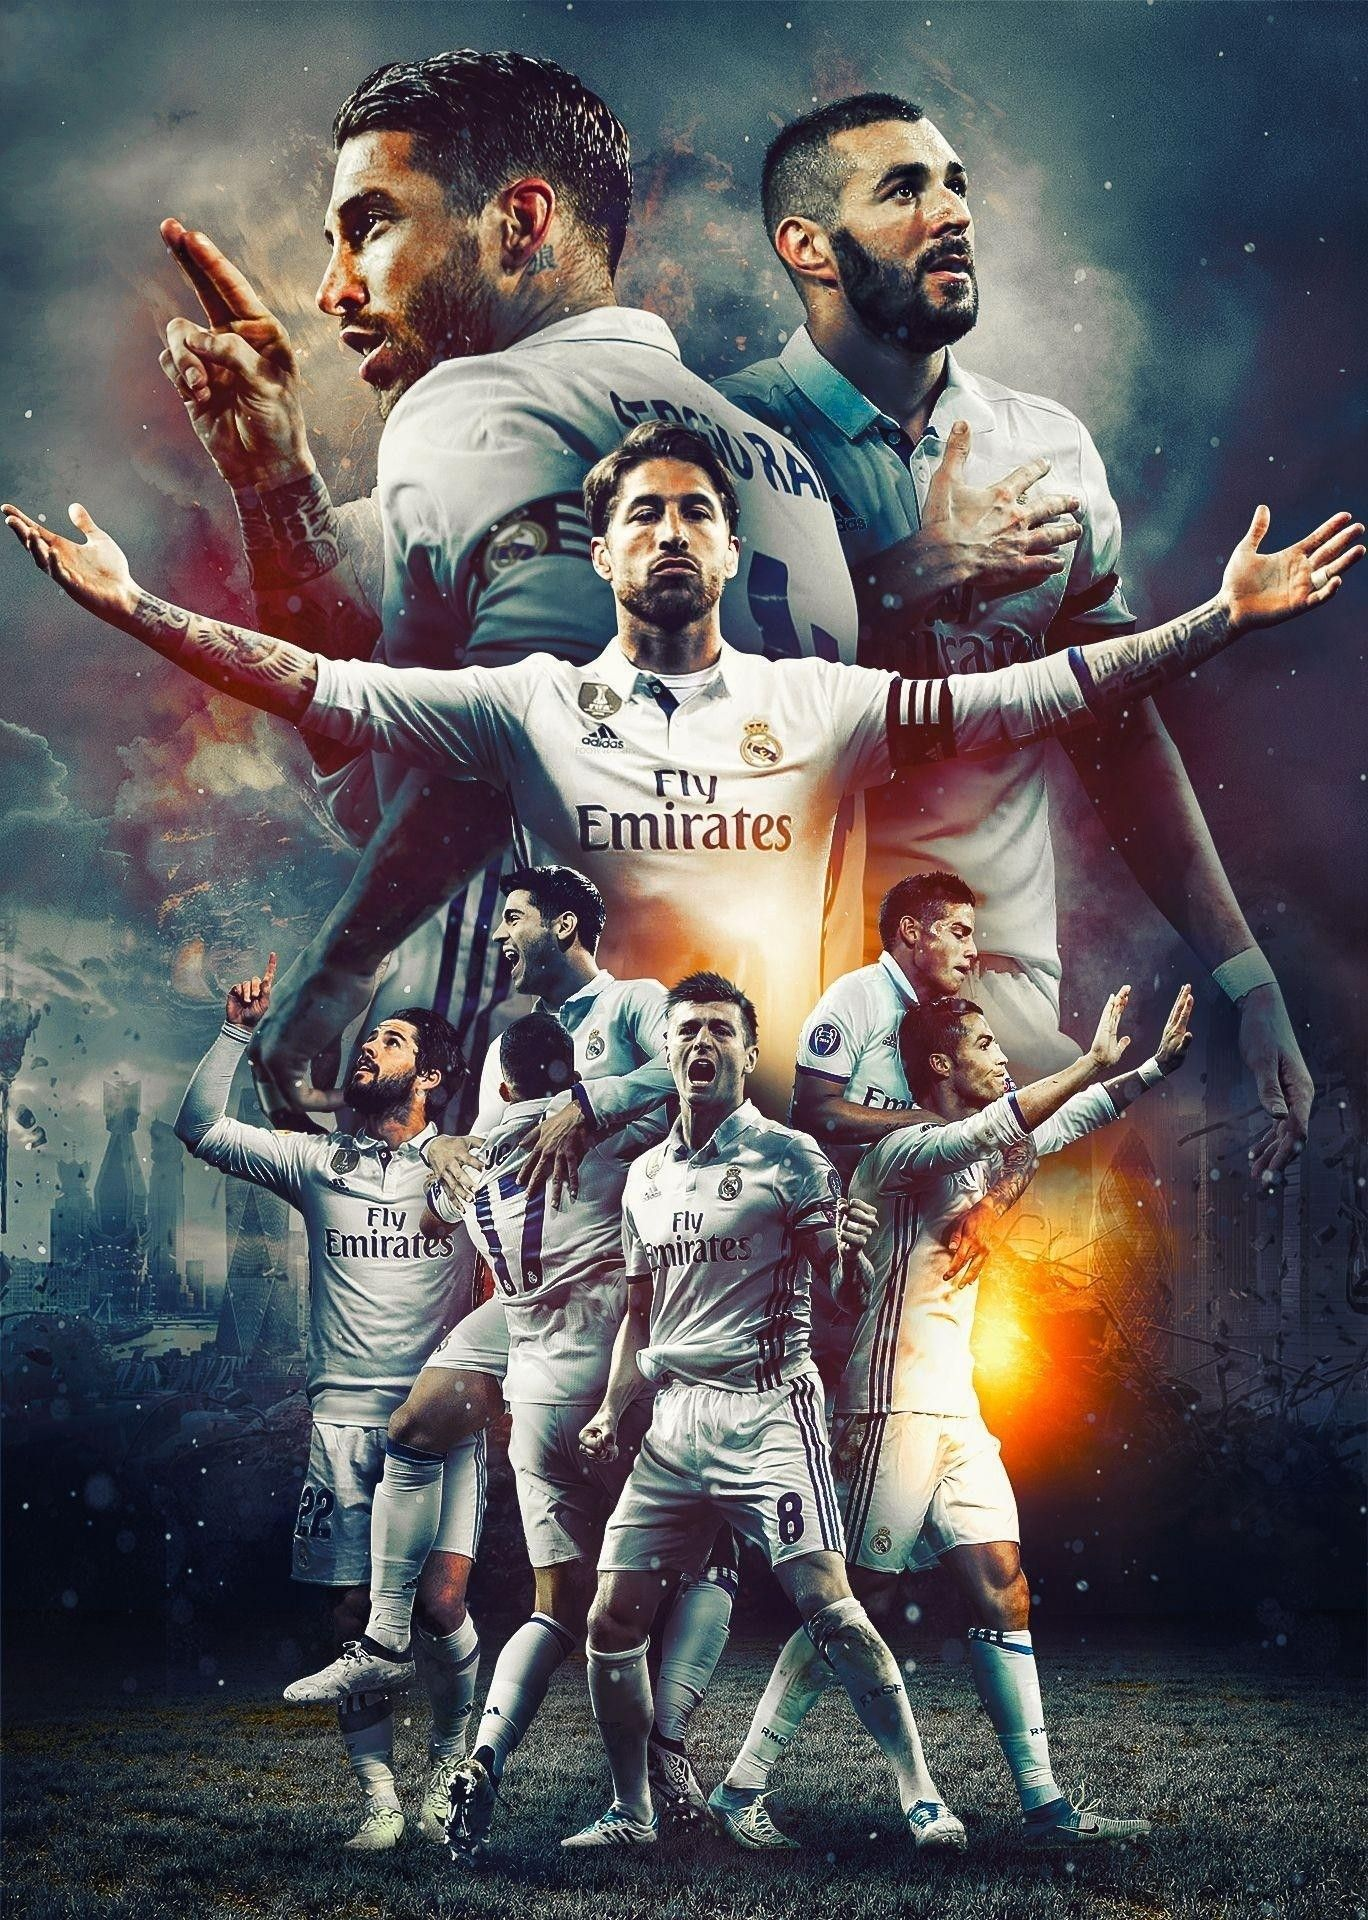 Real Madrid Wallpaper Hd 2019 Hd Football In 2020 Real Madrid Images Real Madrid Wallpapers Ronaldo Real Madrid